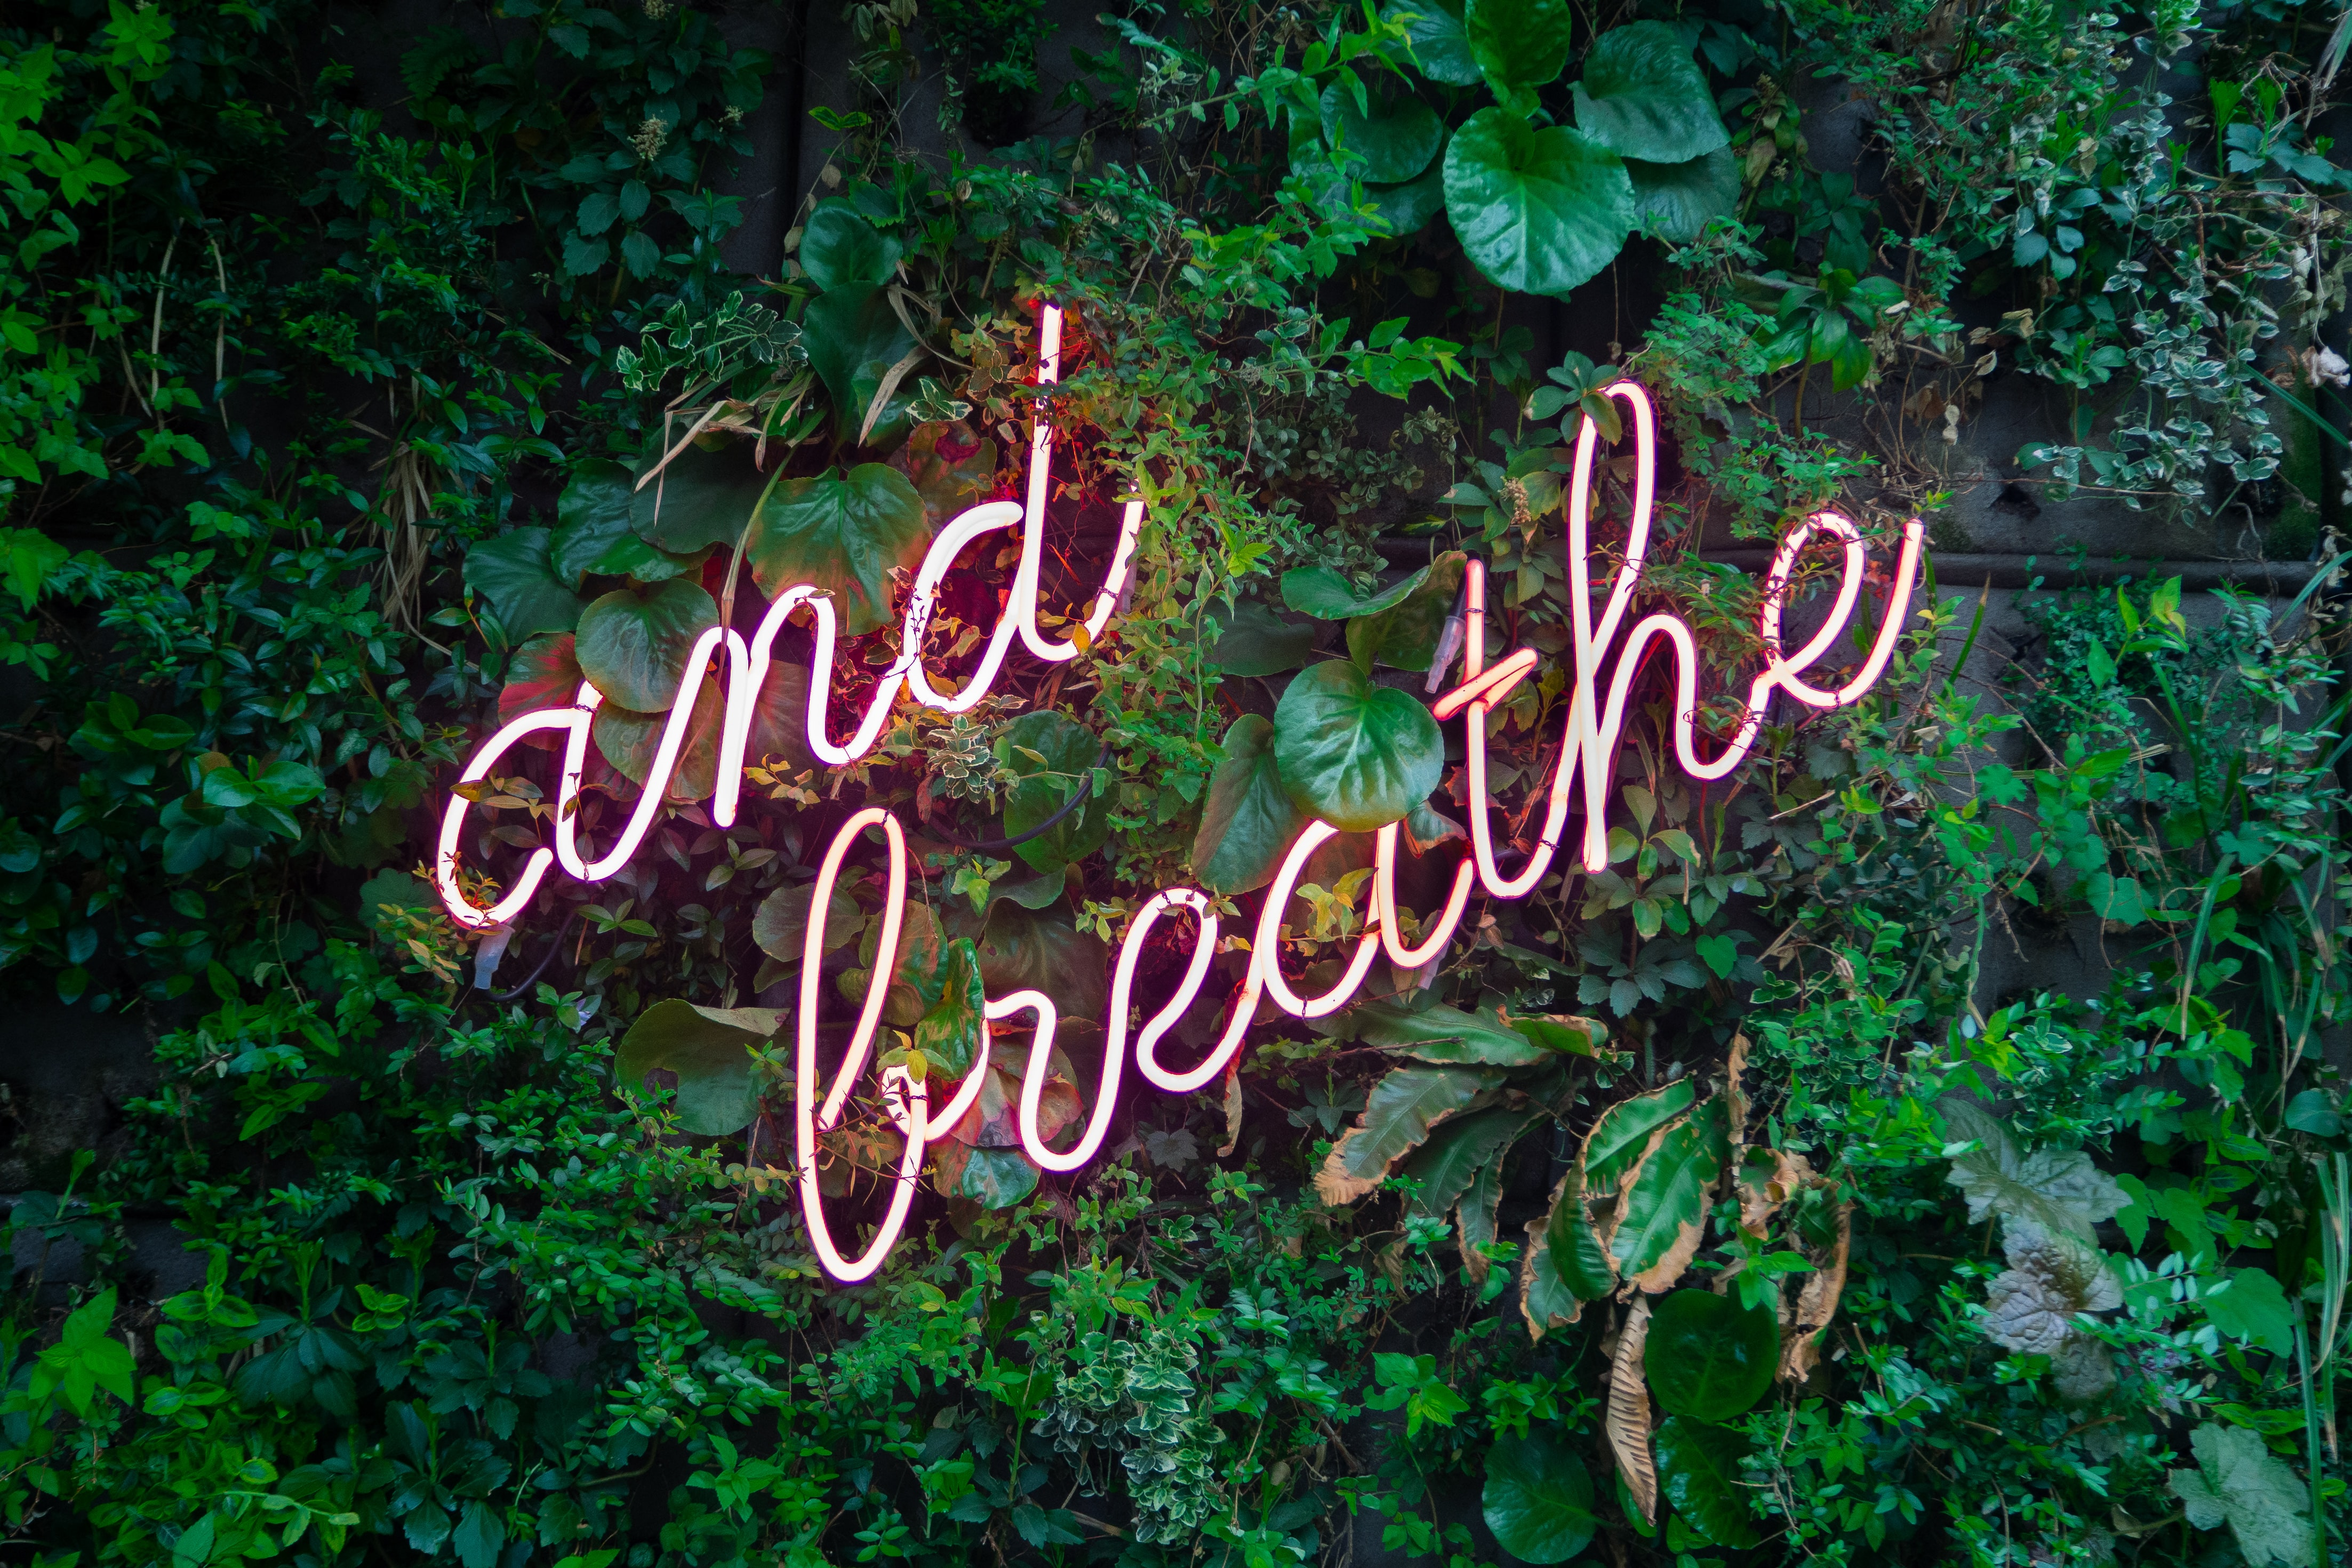 A wall of plants with And Breathe written in neon.